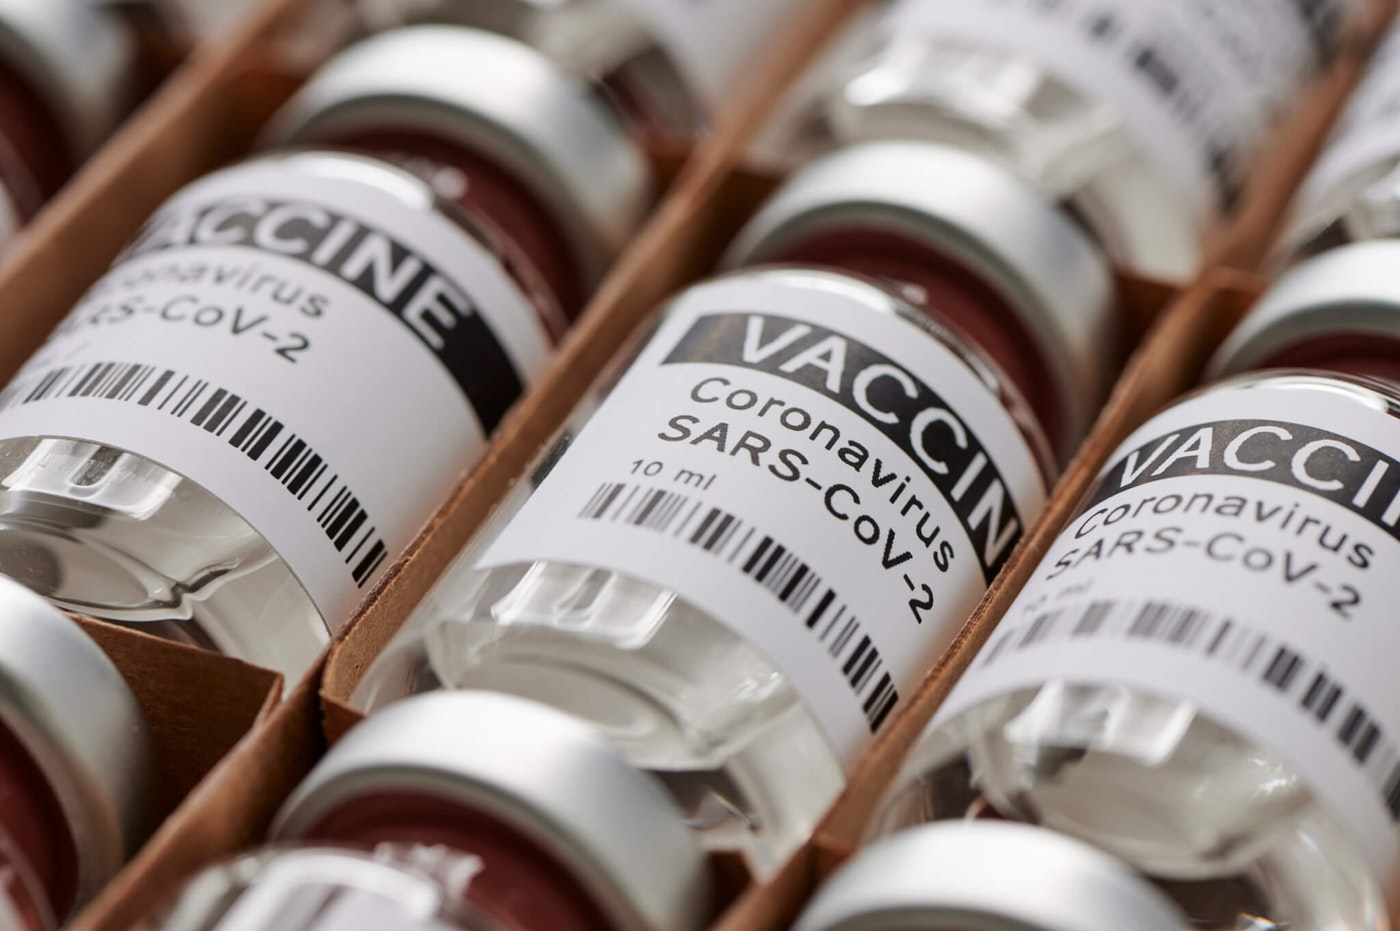 The Vaccine is Safe, Fauci Says